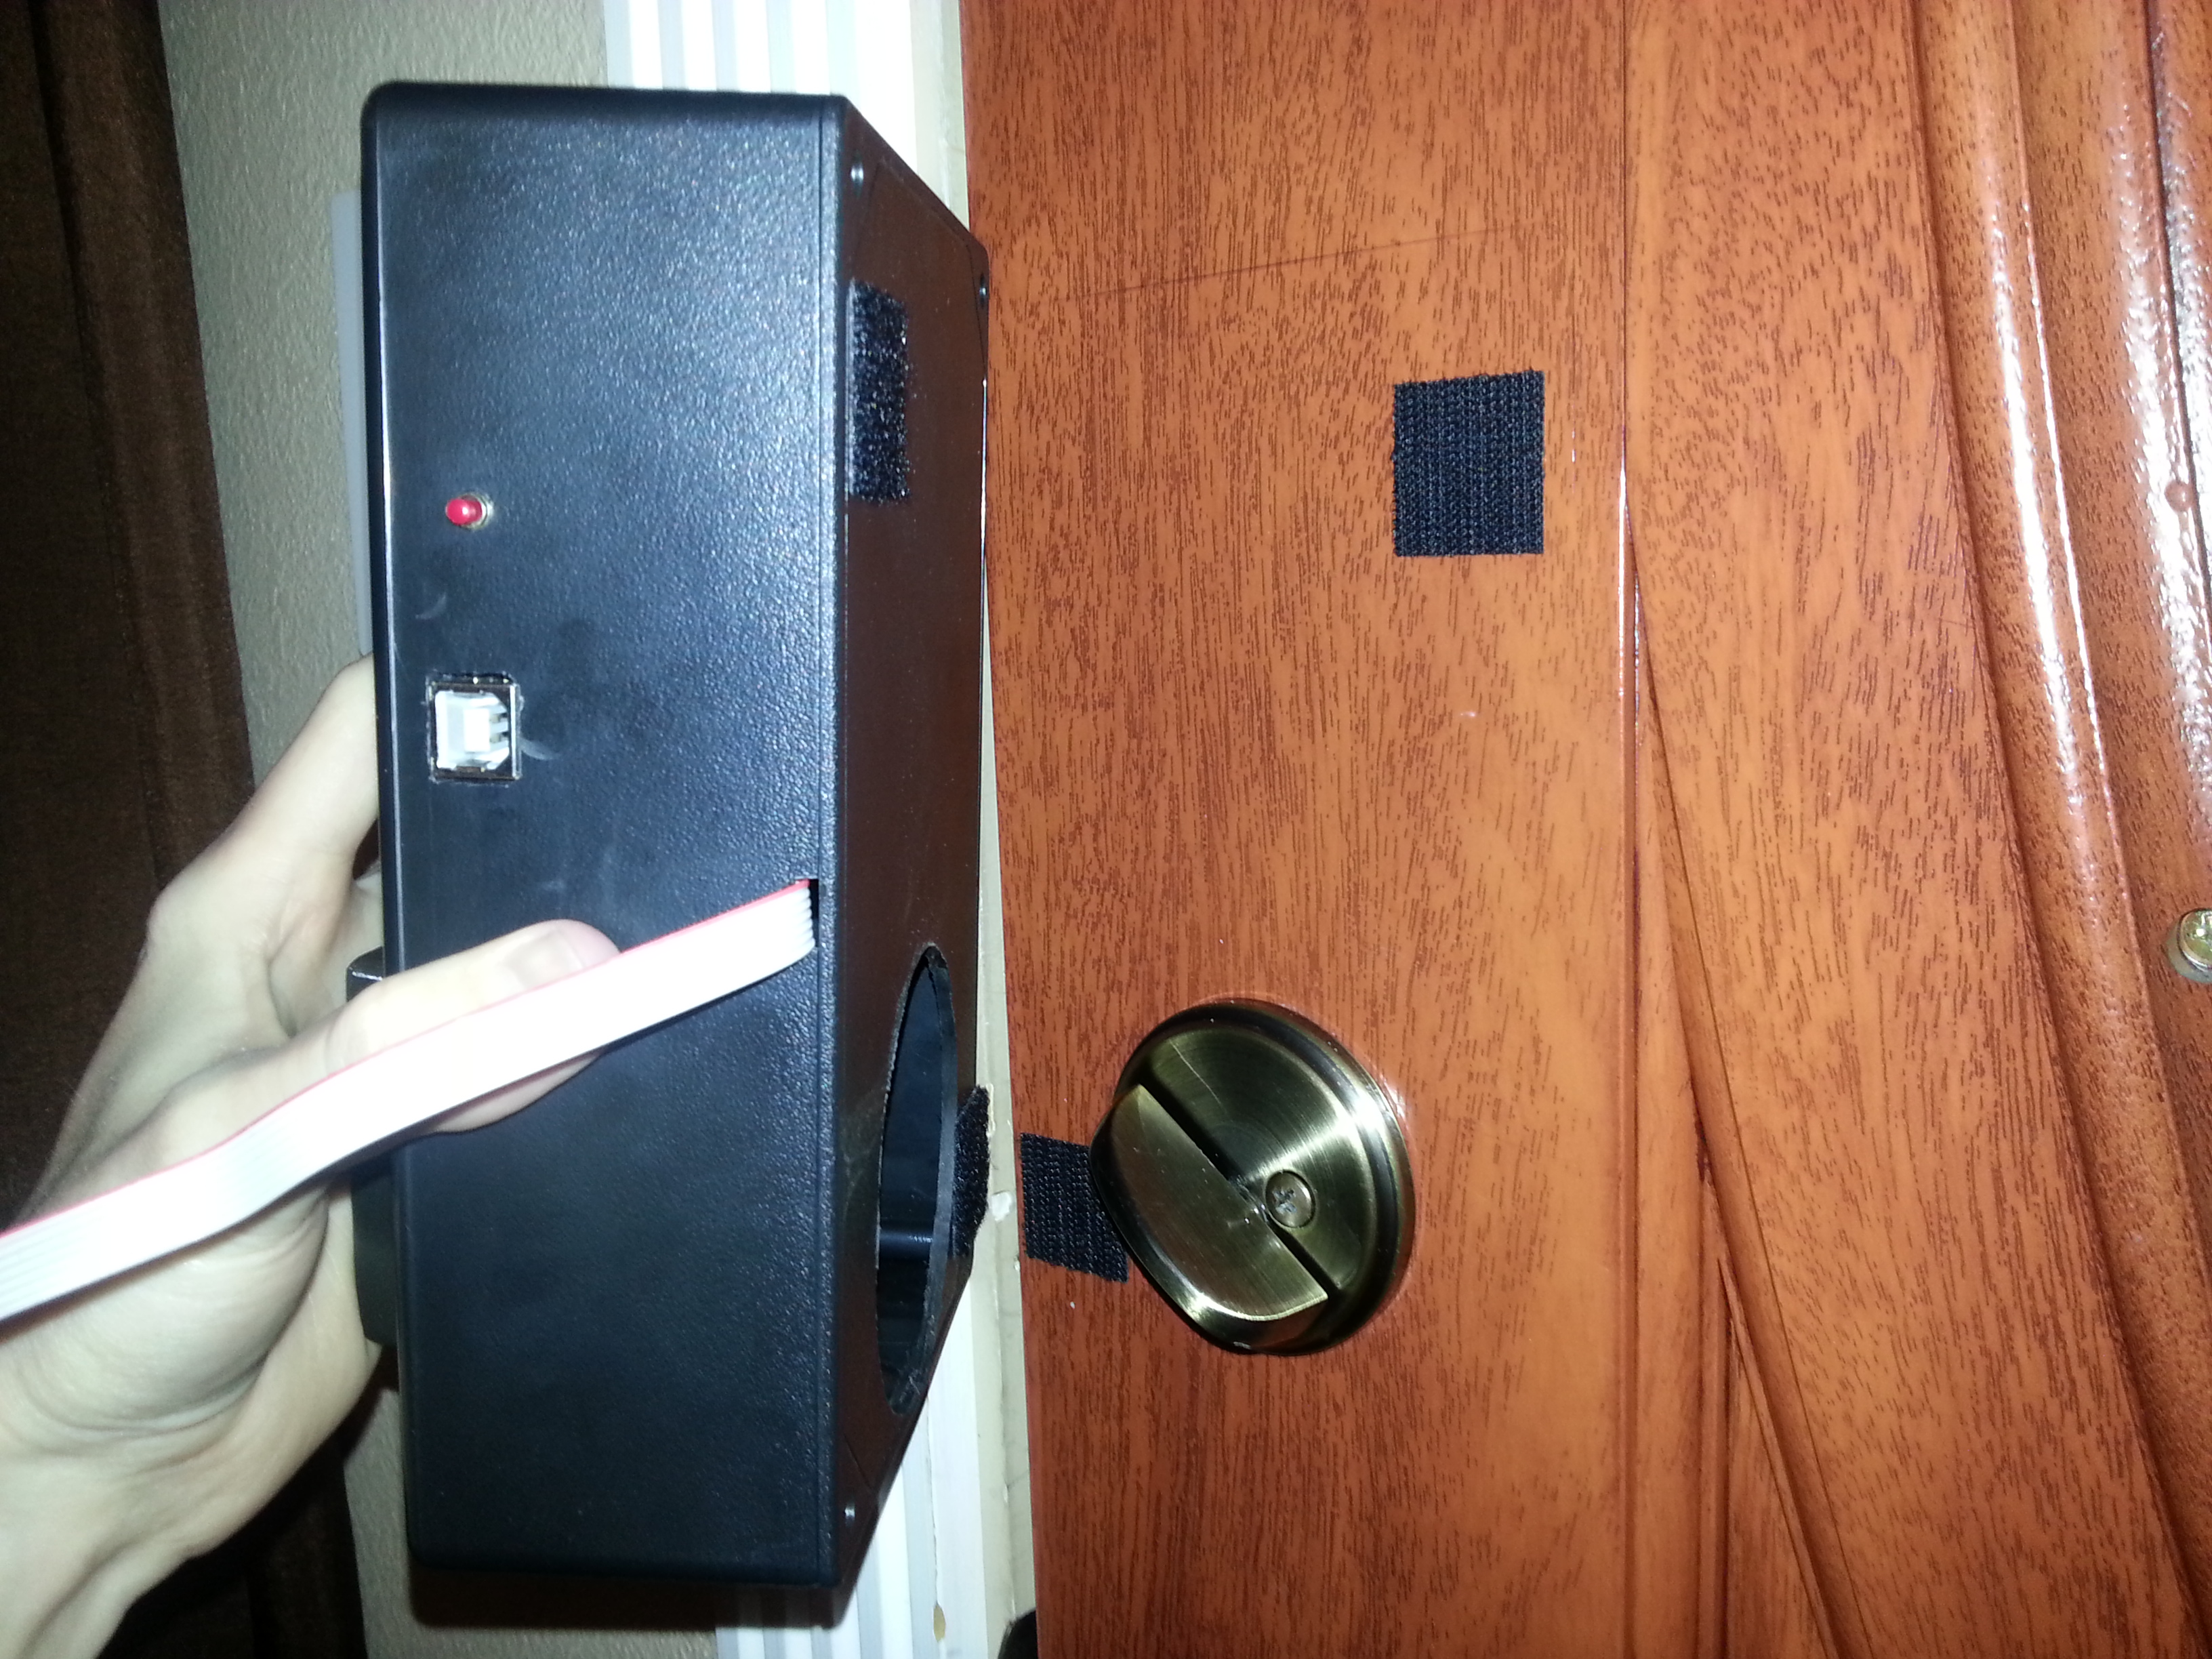 Picture of Mounting the Deadbolt Controller to the Door